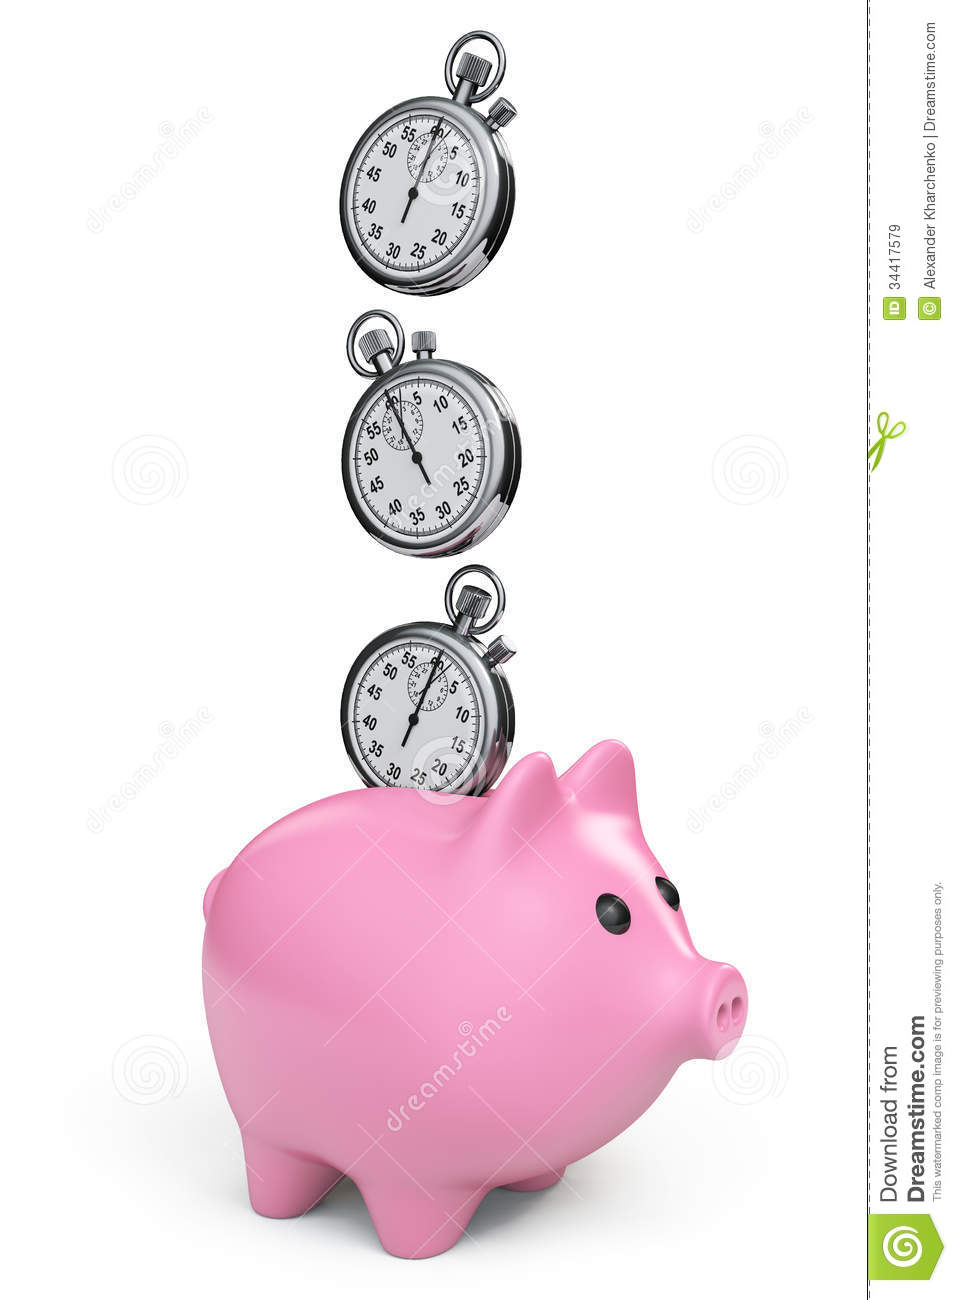 time bank Timebanksnyc has been archived contact us for more information timebanksnyc has been archived contact us for more information.